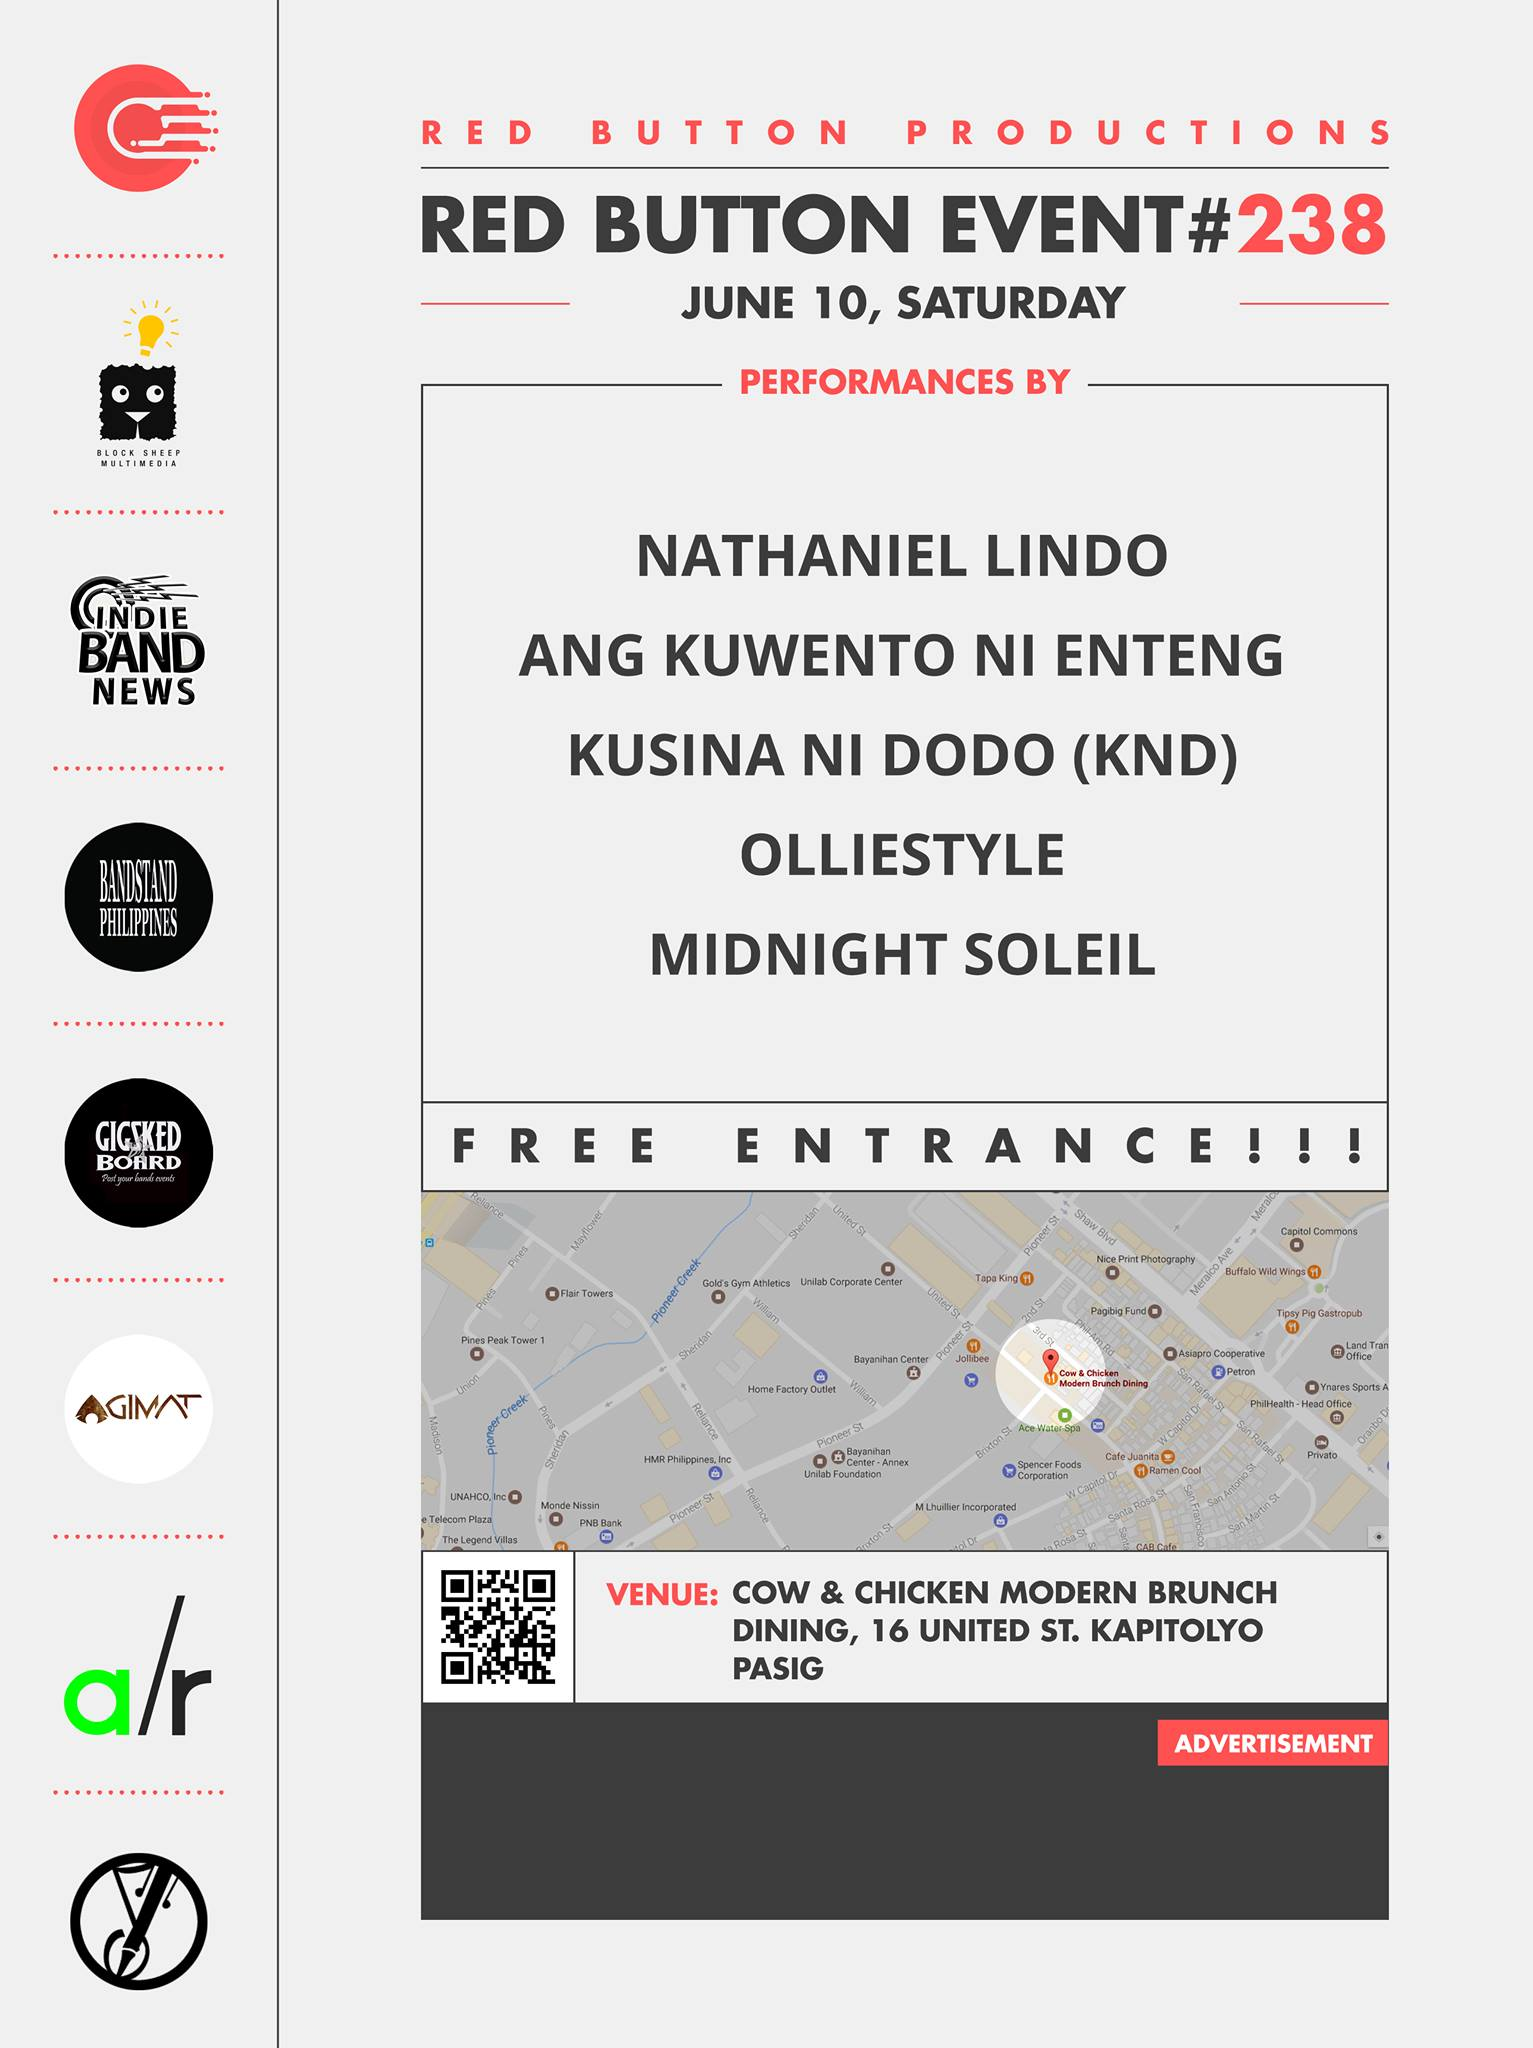 Red Button Productions Like This Page · 2 hrs · Red Button Productions present Red Button Event #238 June 10, Saturday at Cow & Chicken Modern Brunch Dining, United St. Kapitolyo, Pasig NO ENTRANCE FEE!!! OPEN JAM AFTER performances by: Nathaniel Lindo Ang Kuwento ni Enteng Kusina Ni DoDo (KND) Olliestyle Midnight Soleil Event Link: https://www.facebook.com/events/1843149972612068 Media Partners: Block Sheep Multimedia Indie Band News Bandstand Philippines Gig Sked Board Agimat: Sining at Kulturang Pinoy Songwriters Philippines Adobo Radio — at Cow & Chicken Modern Brunch Dining.